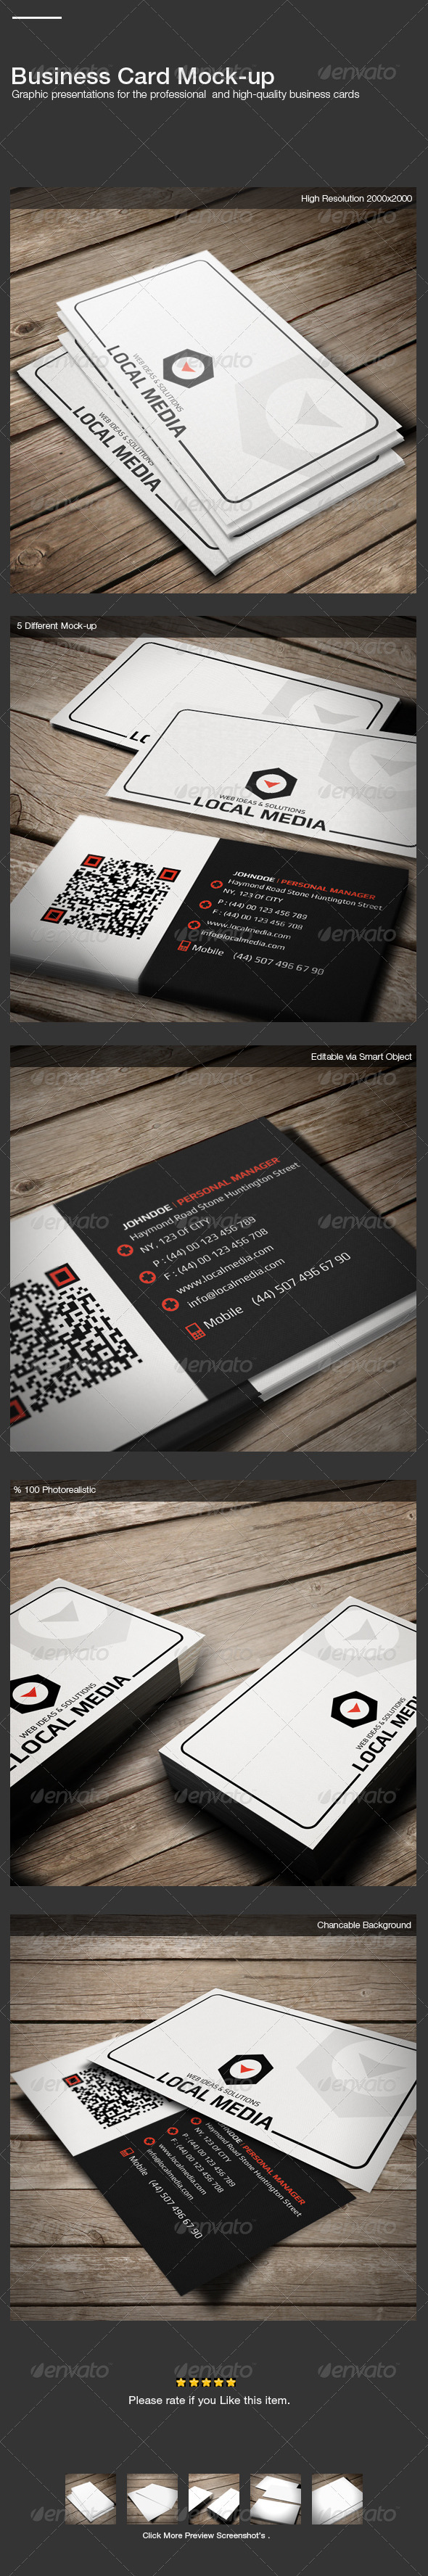 GraphicRiver Business Card Mock-Up 3500813